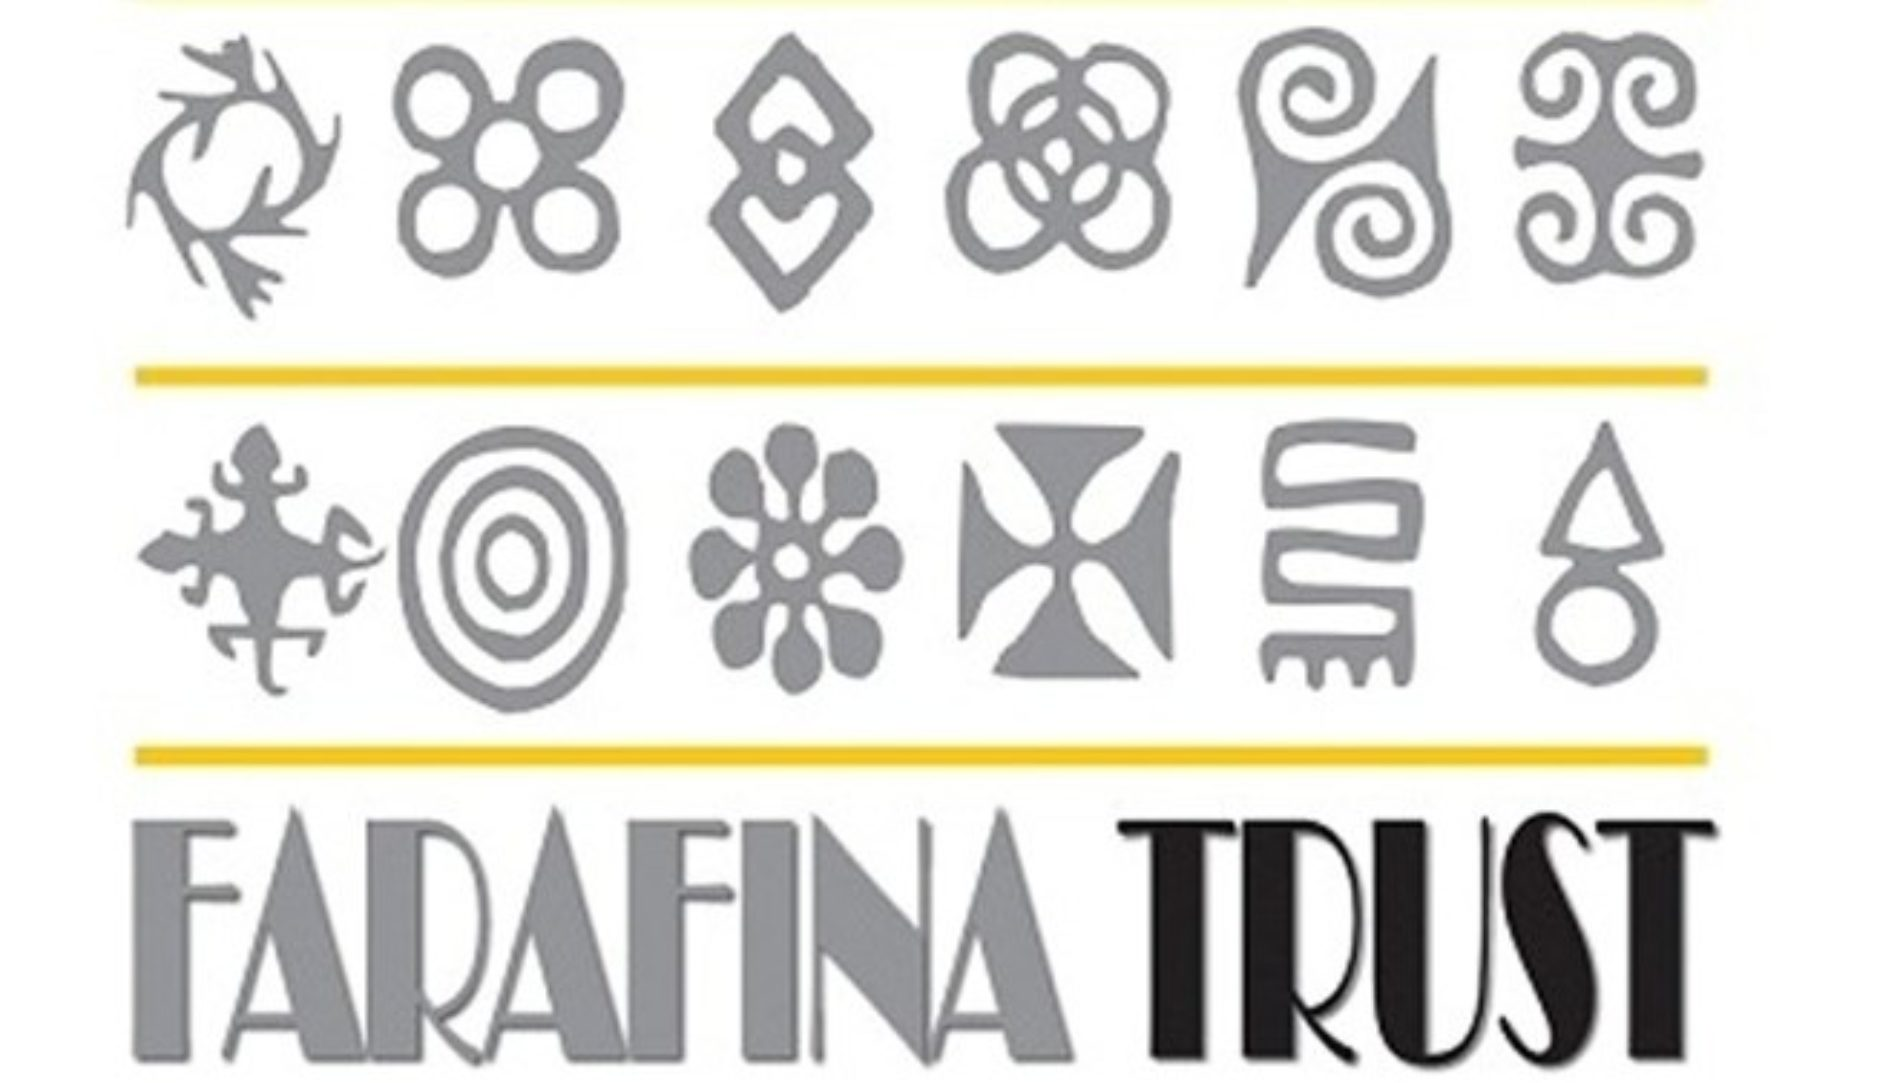 Farafina Trust Creative Writing Workshop 2015 Is Here